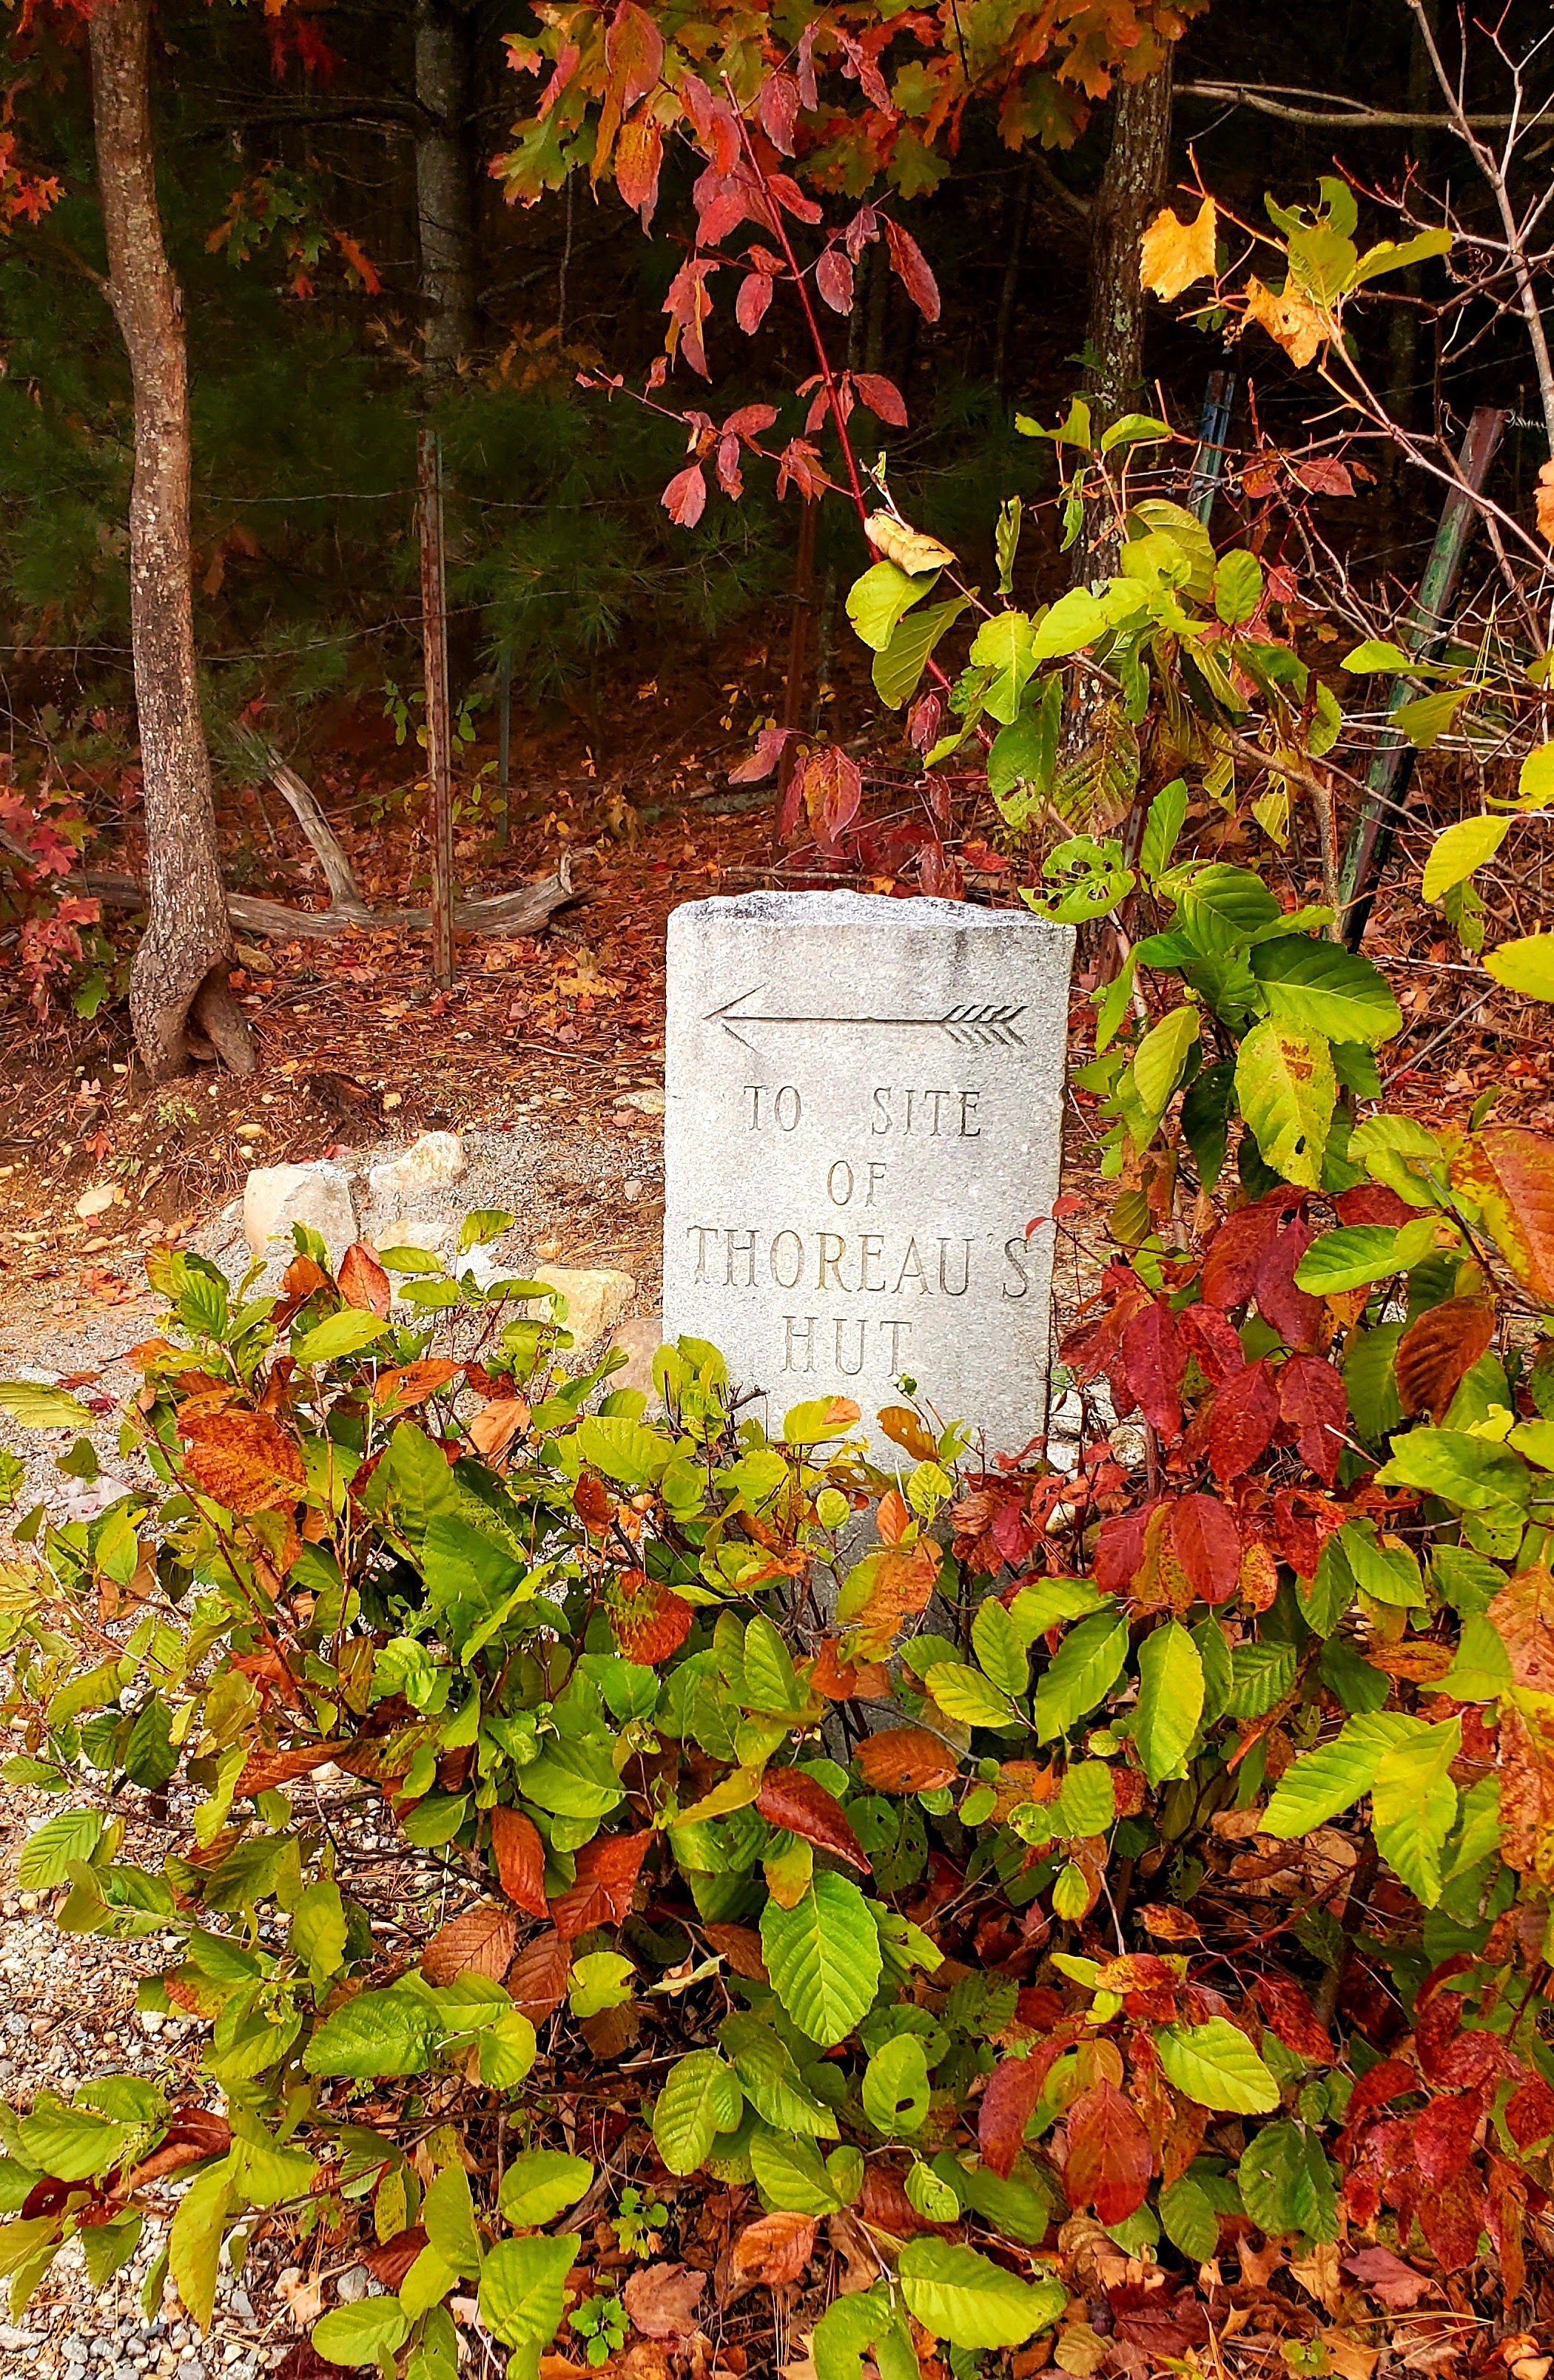 granite sign for Thoreau's hut